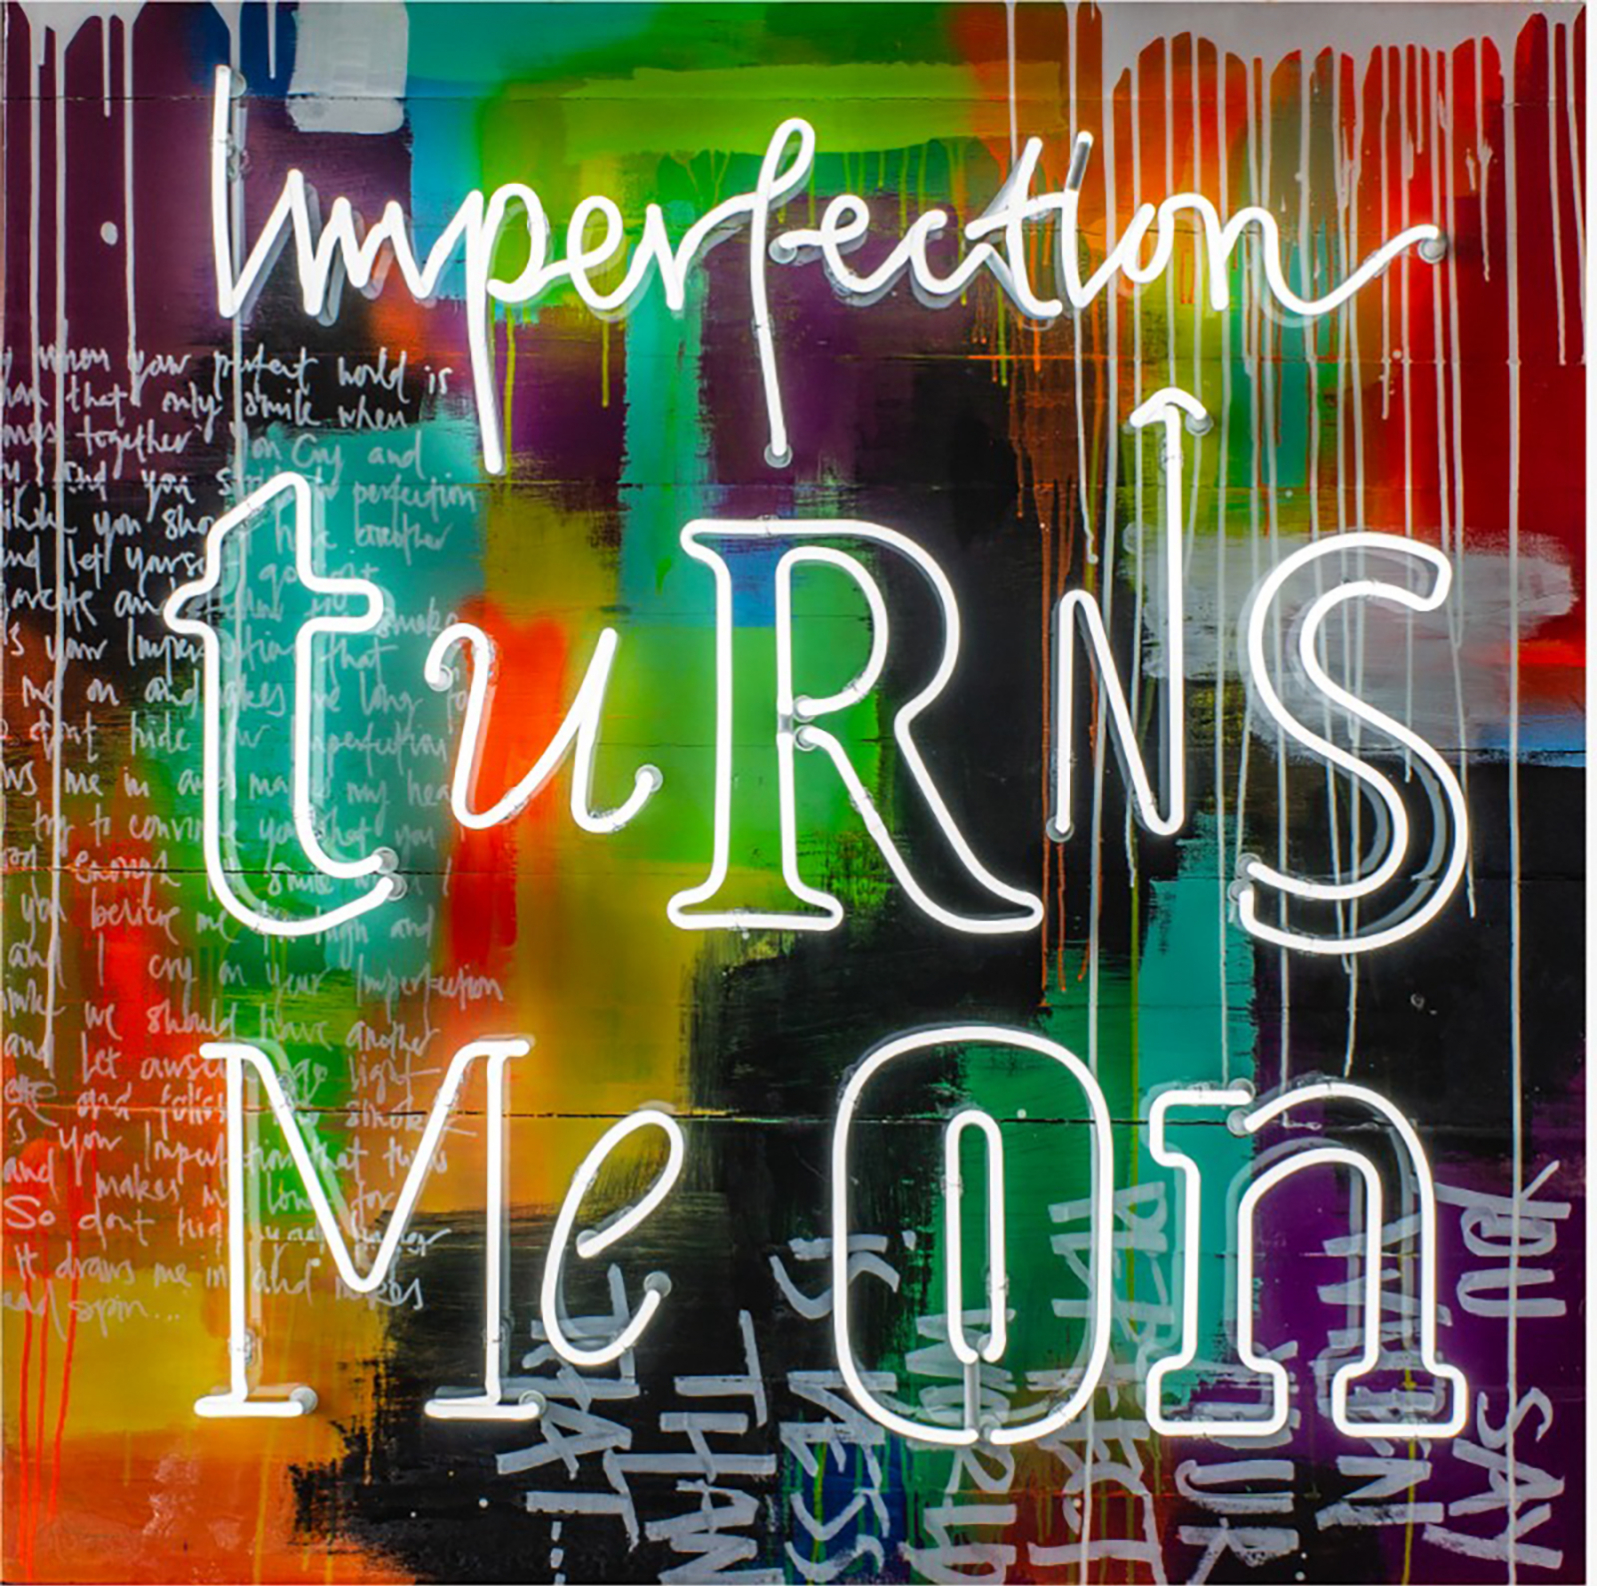 IMPERFECTION TURNS ME ON NEON - Collaboration with Gods Own Junkyard - Price on request